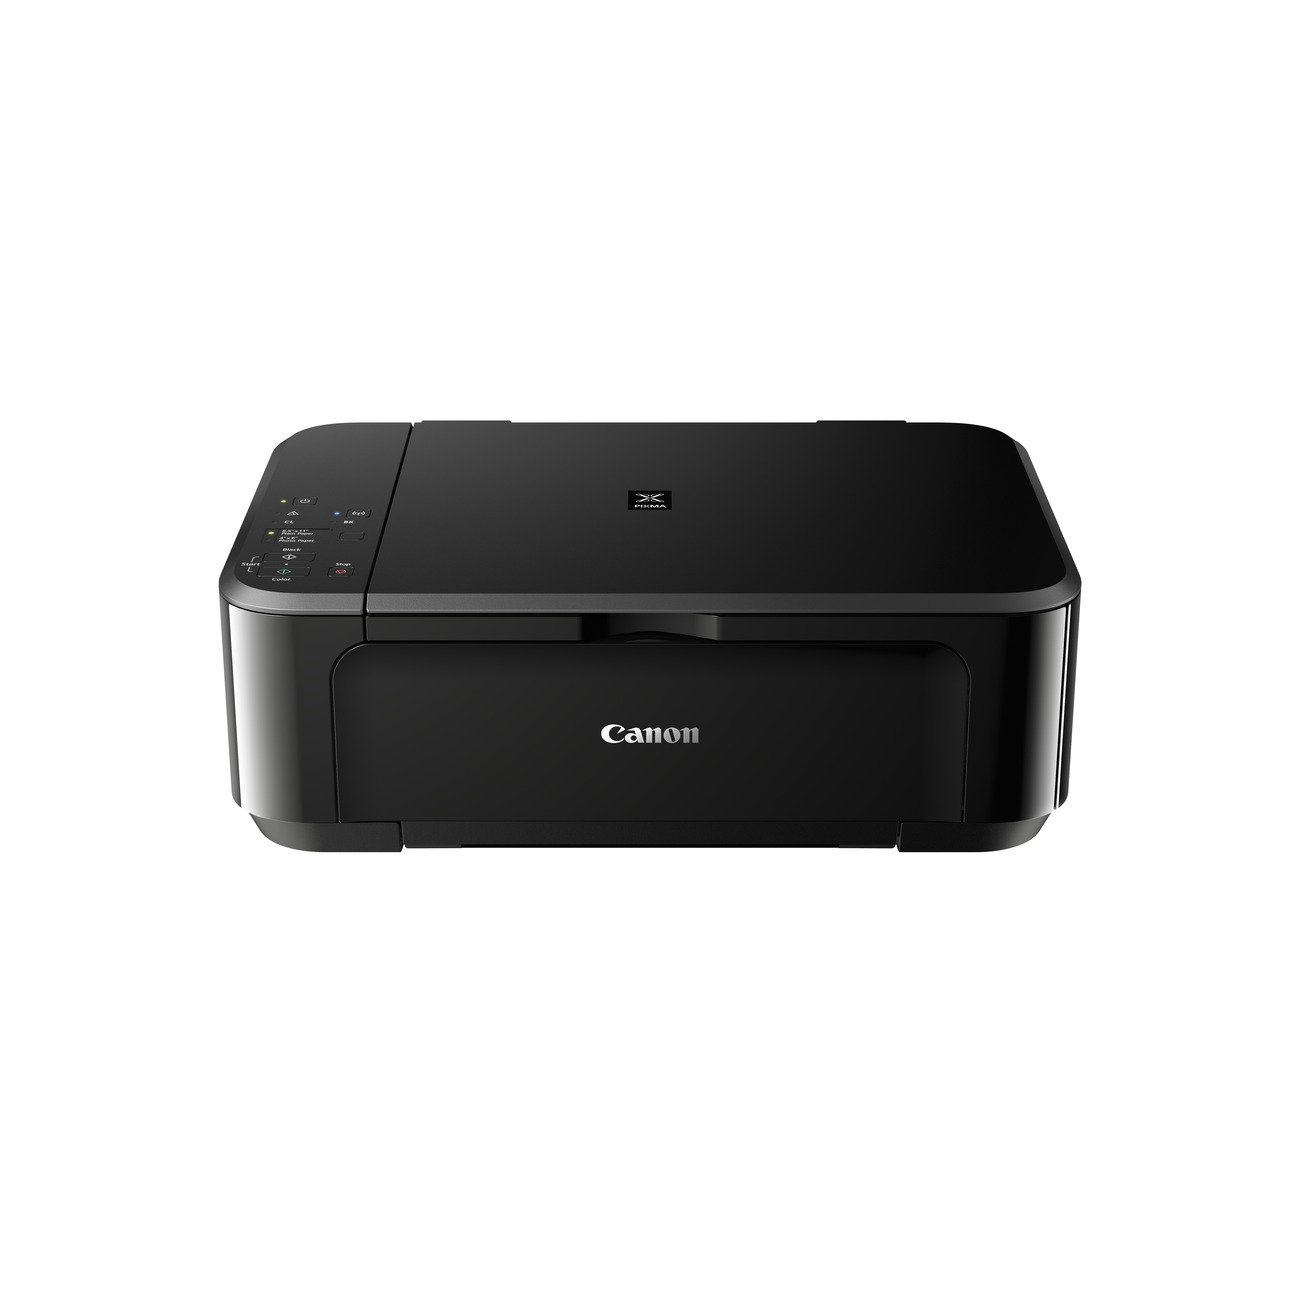 Canon Pixma MG3650 Stampante Multifunzione Inkjet, 4800 x 1200 dpi, Nero 0515C008AA Cannon all-in-one allinone